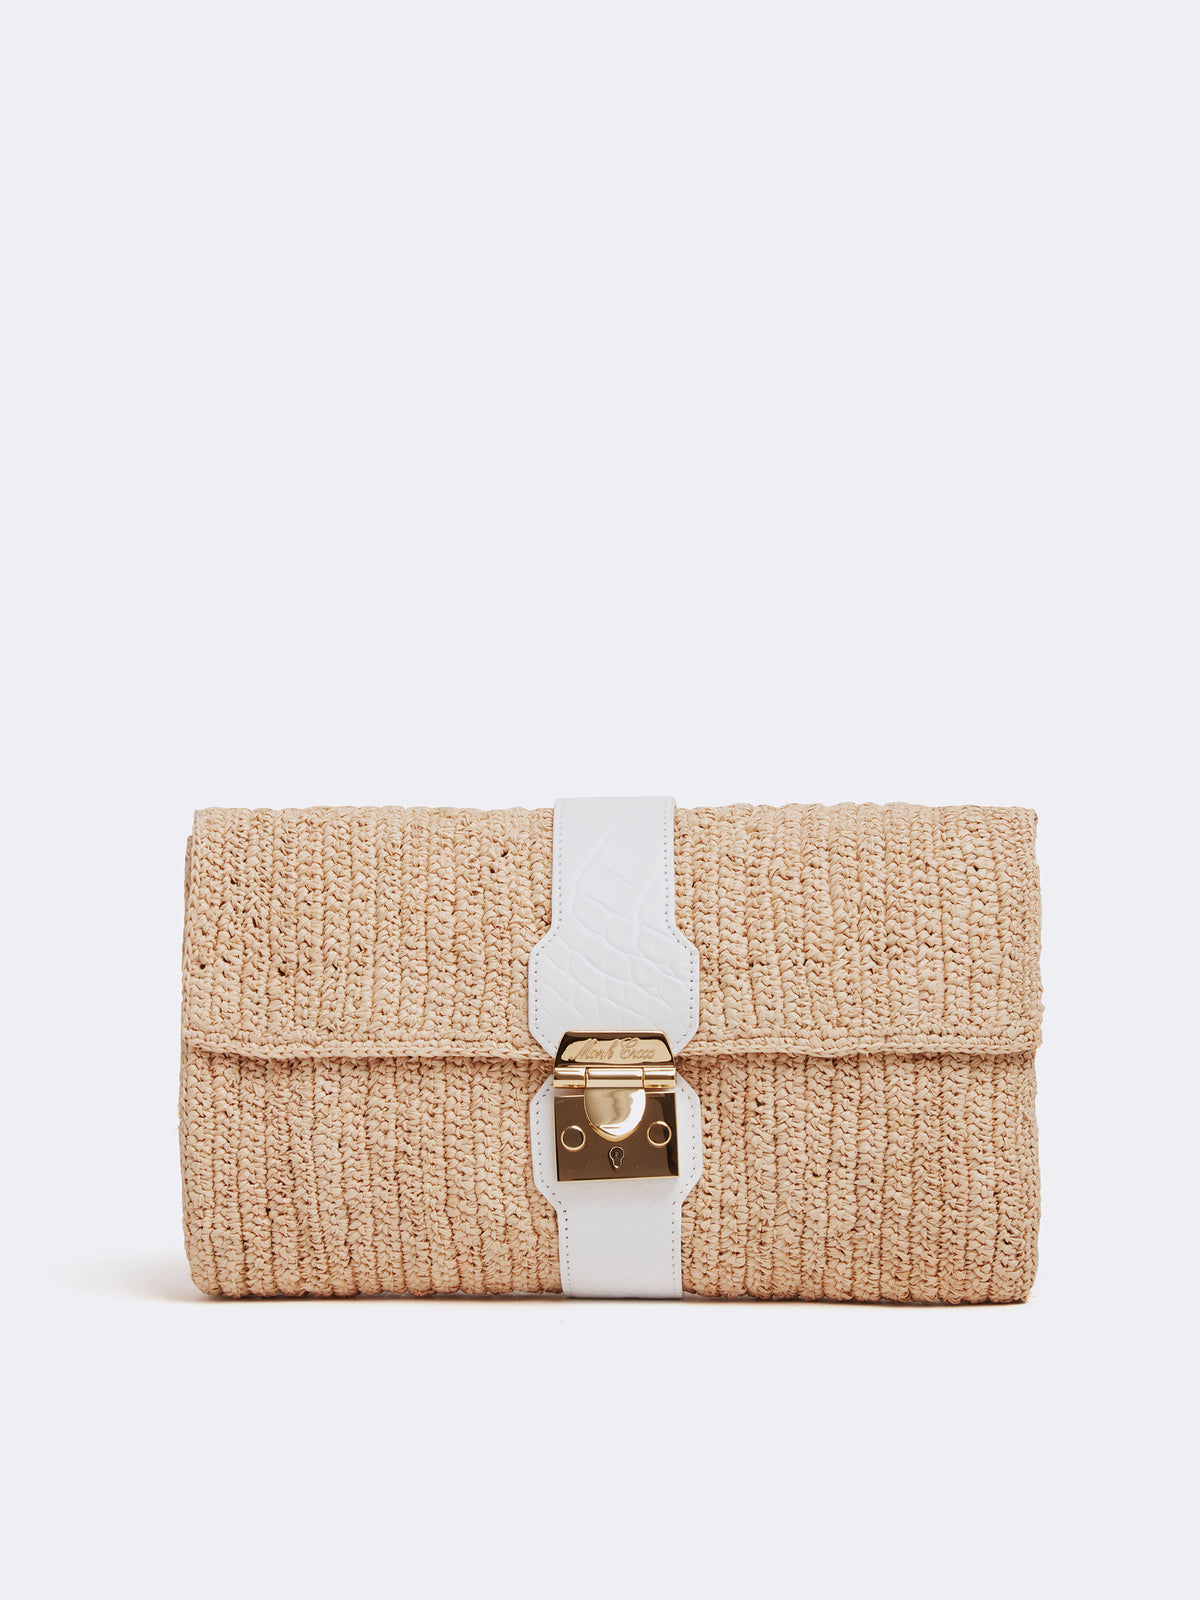 Mark Cross Sylvette Raffia & Leather Clutch Crocodile Stamped Soft Calf White / Natural Raffia Front